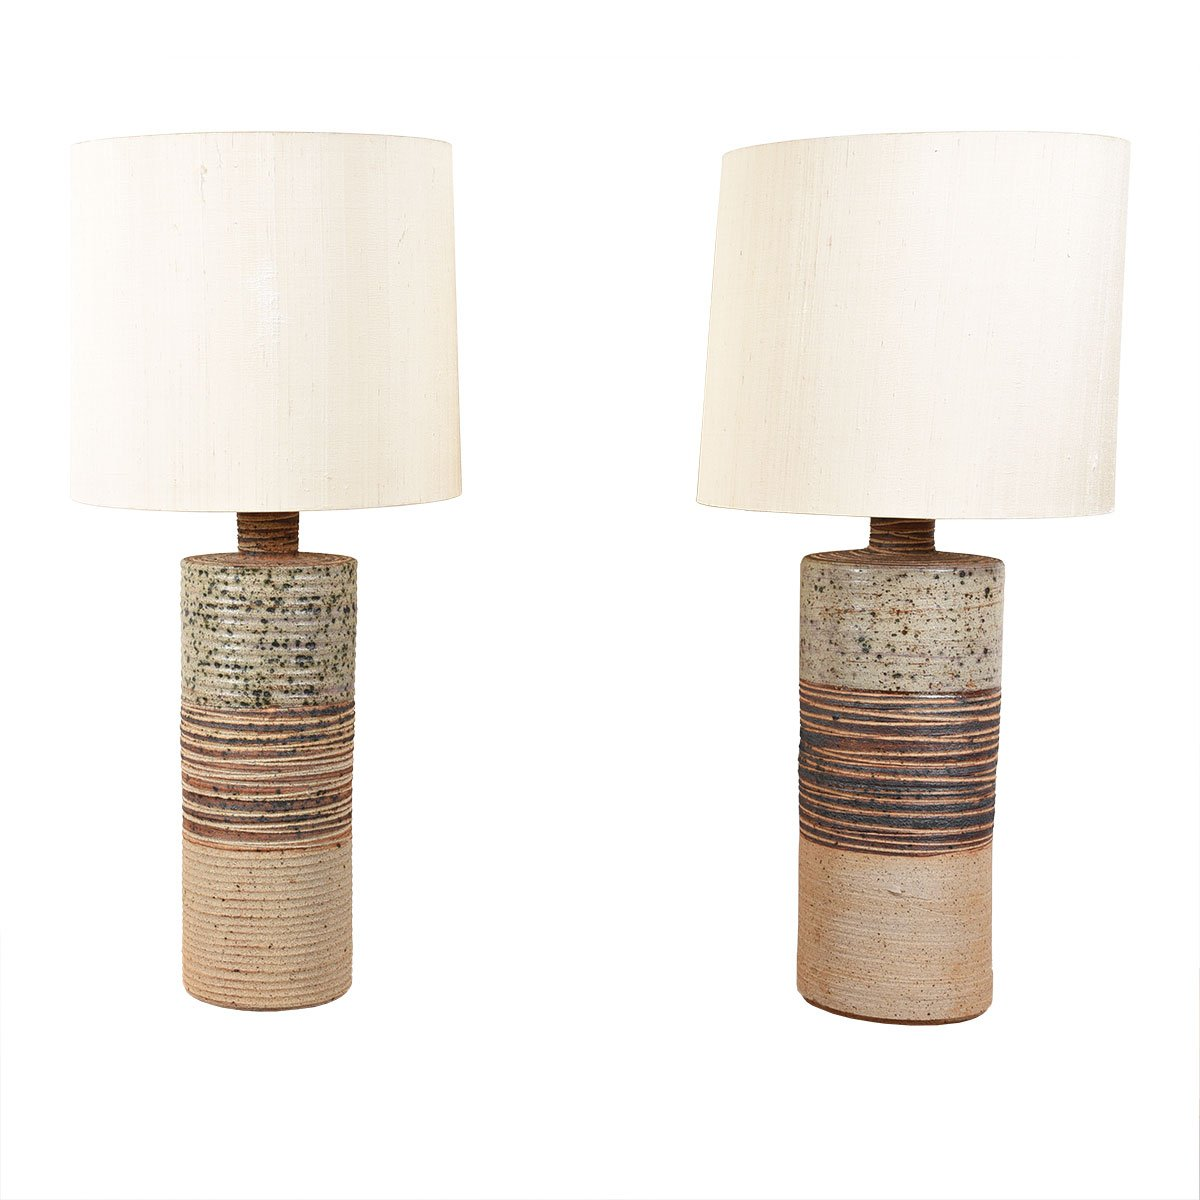 Tue Poulsen Pair of Danish Mid Century Pottery Table Lamps